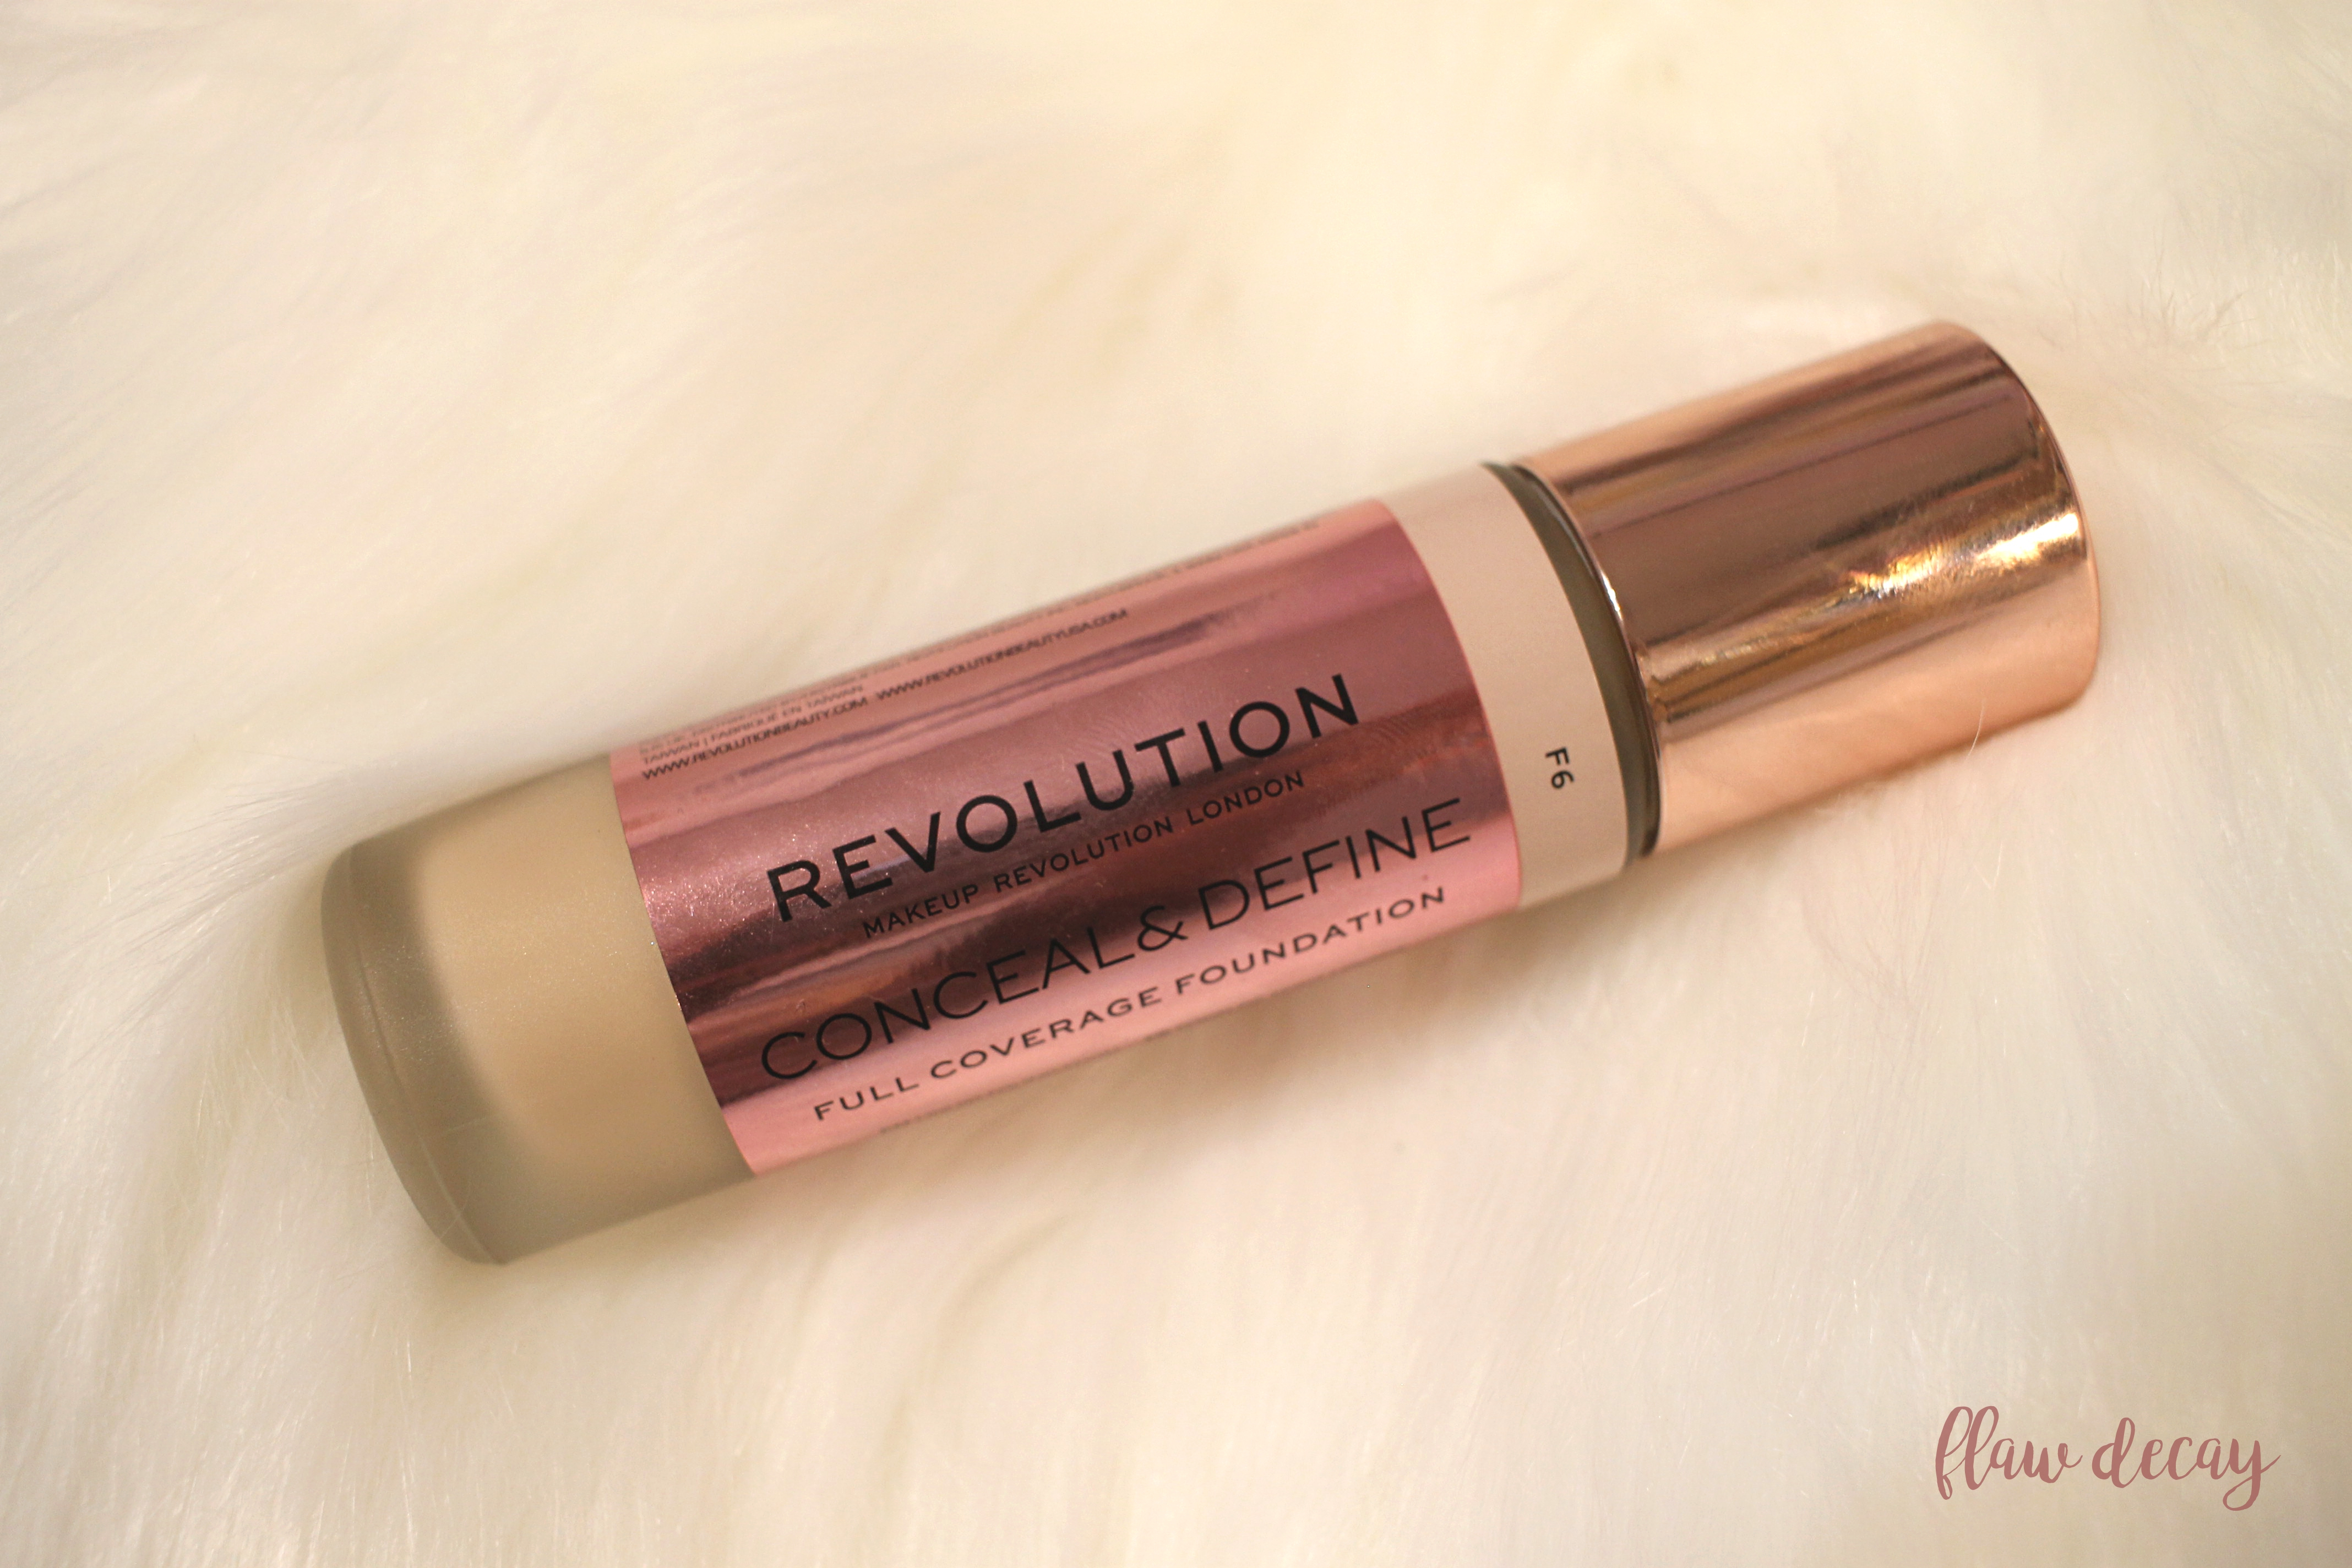 Makeup Revolution Conceal and Define Foundation Review Swatches Wear Test